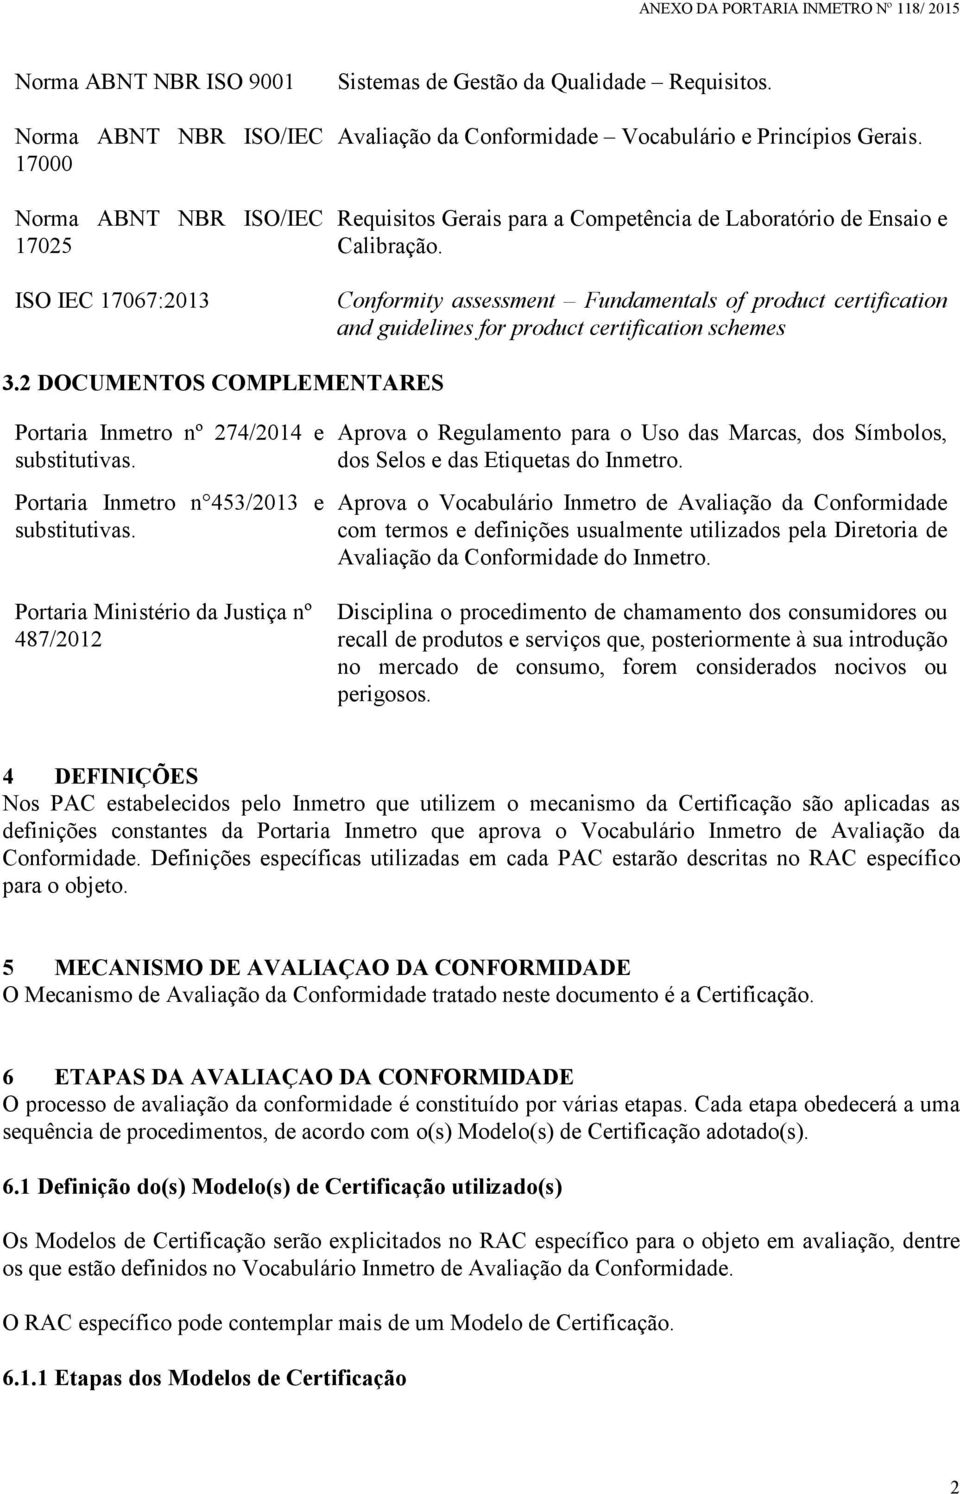 Conformity assessment Fundamentals of product certification and guidelines for product certification schemes 3.2 DOCUMENTOS COMPLEMENTARES Portaria Inmetro nº 274/2014 e substitutivas.